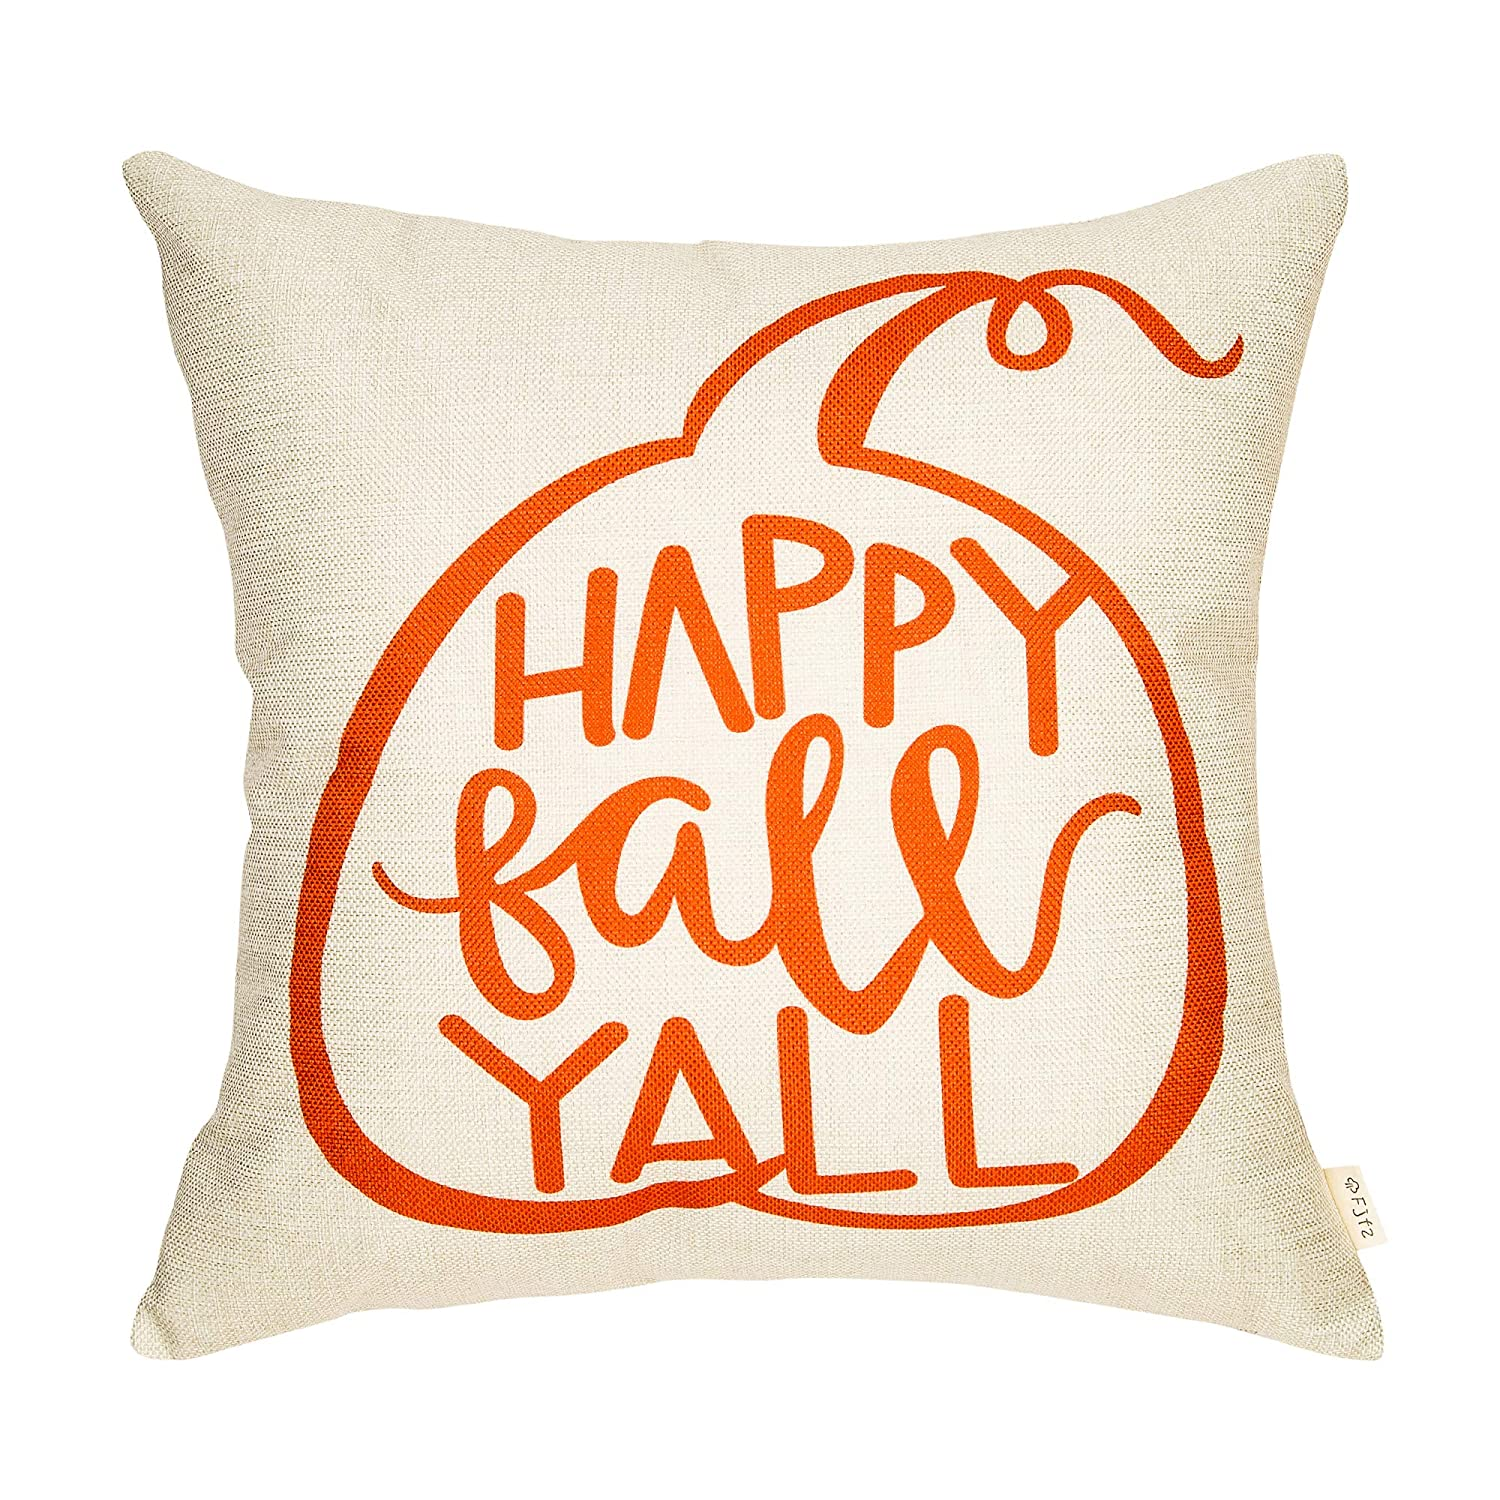 Fjfz Rustic Farmhouse Decoration Happy Fall Yall Cute Pumpkin Autumn Decor Cotton Linen Home Decorative Throw Pillow Case Cushion Cover for ...